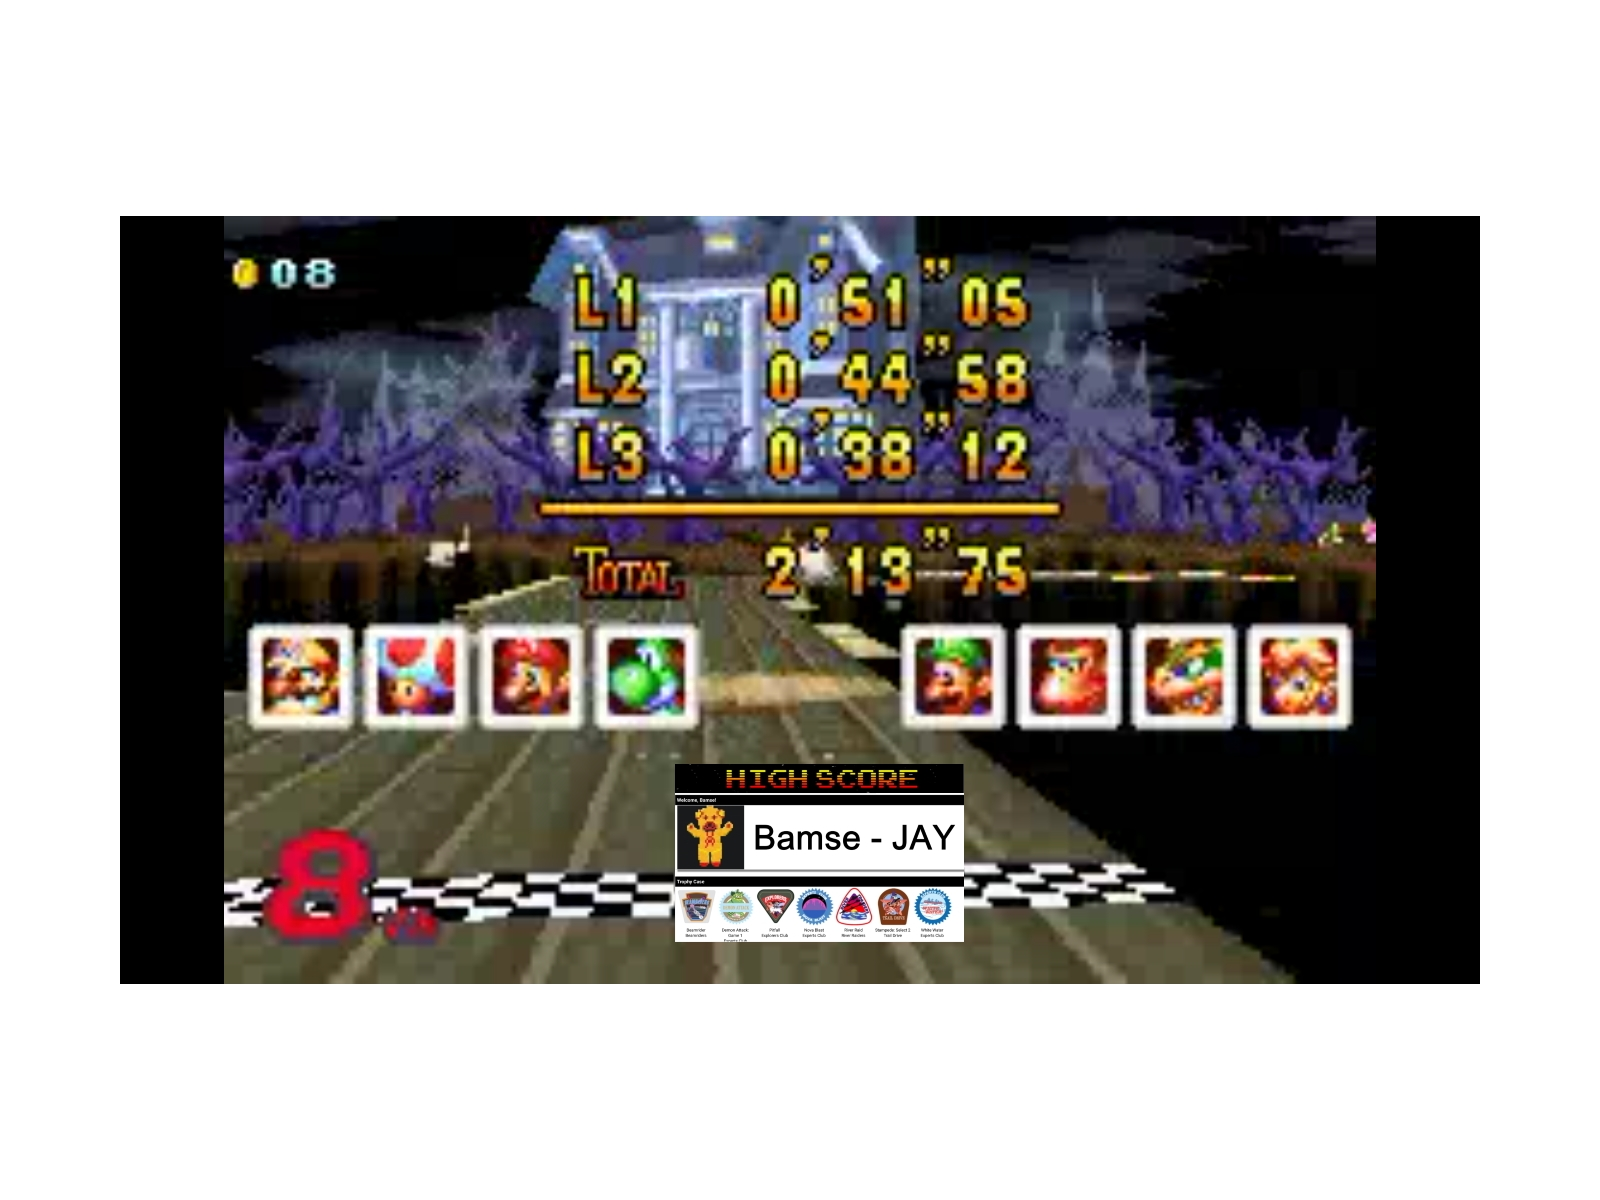 Bamse: Mario Kart Super Circuit: Boo Lake [150cc] [Lap Time] (GBA Emulated) 0:00:38.12 points on 2019-12-17 12:03:15